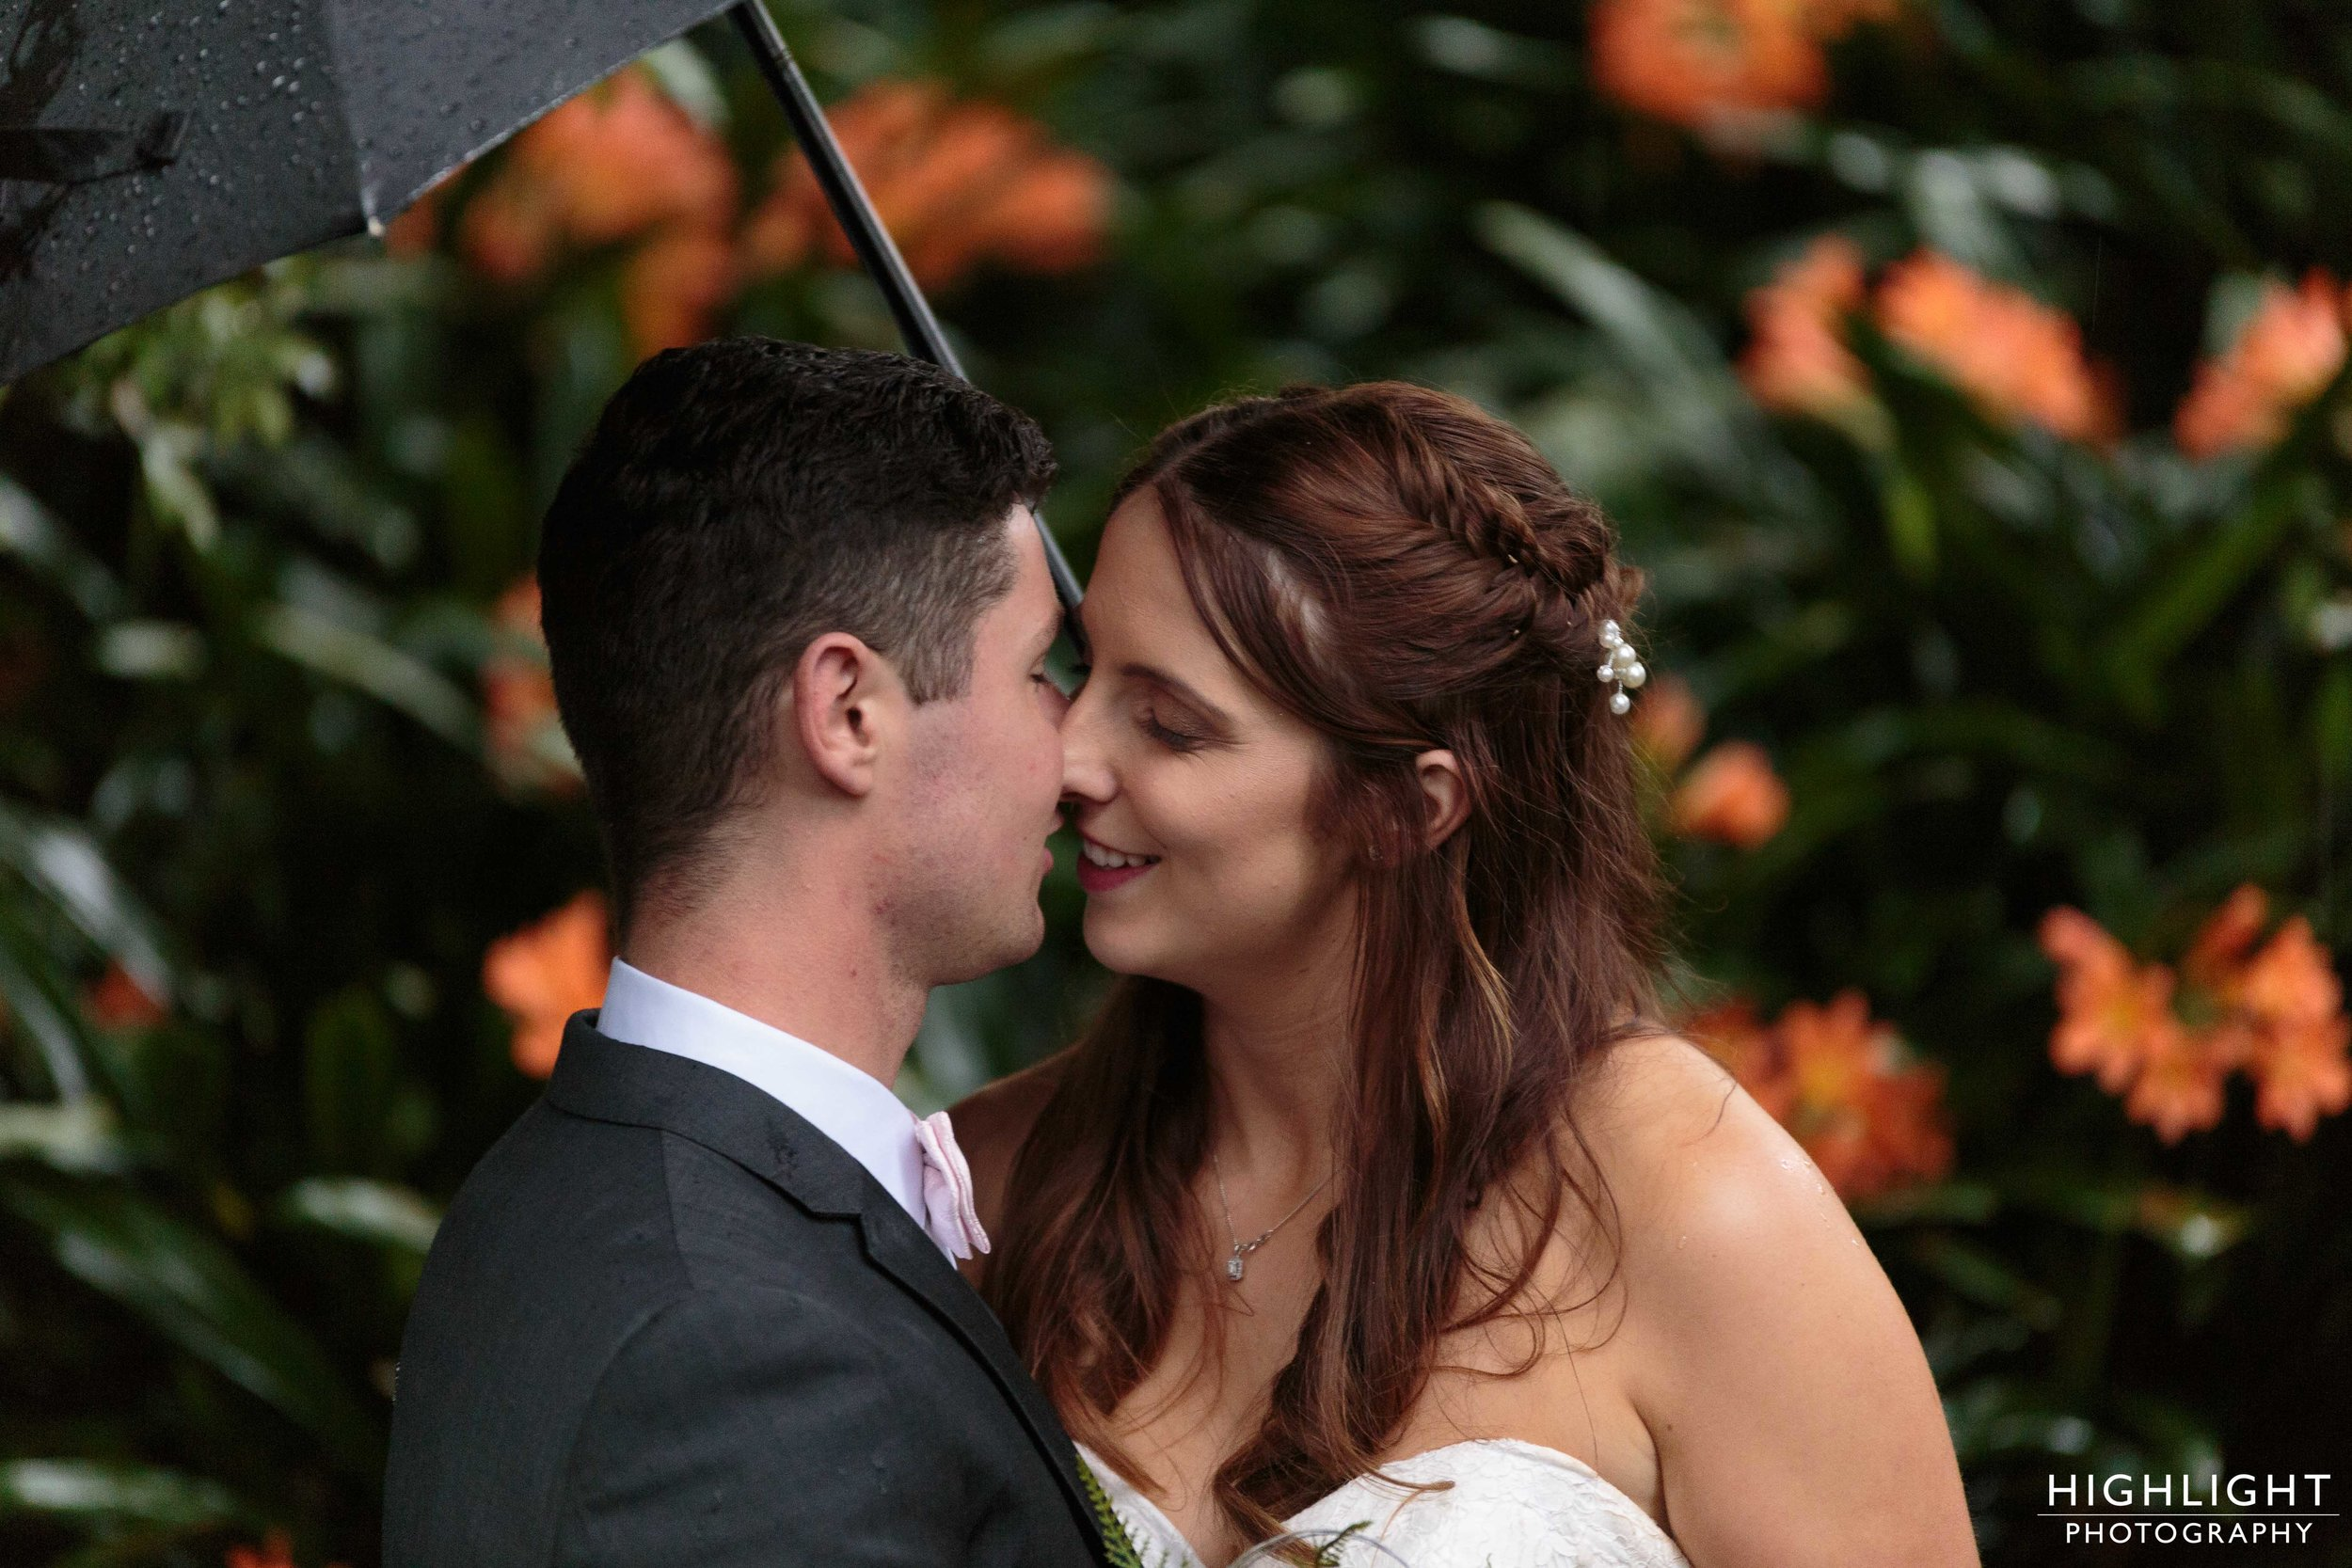 highlight-wedding-photography-palmerston-north-new-zealand-sarahben-2017-54.jpg